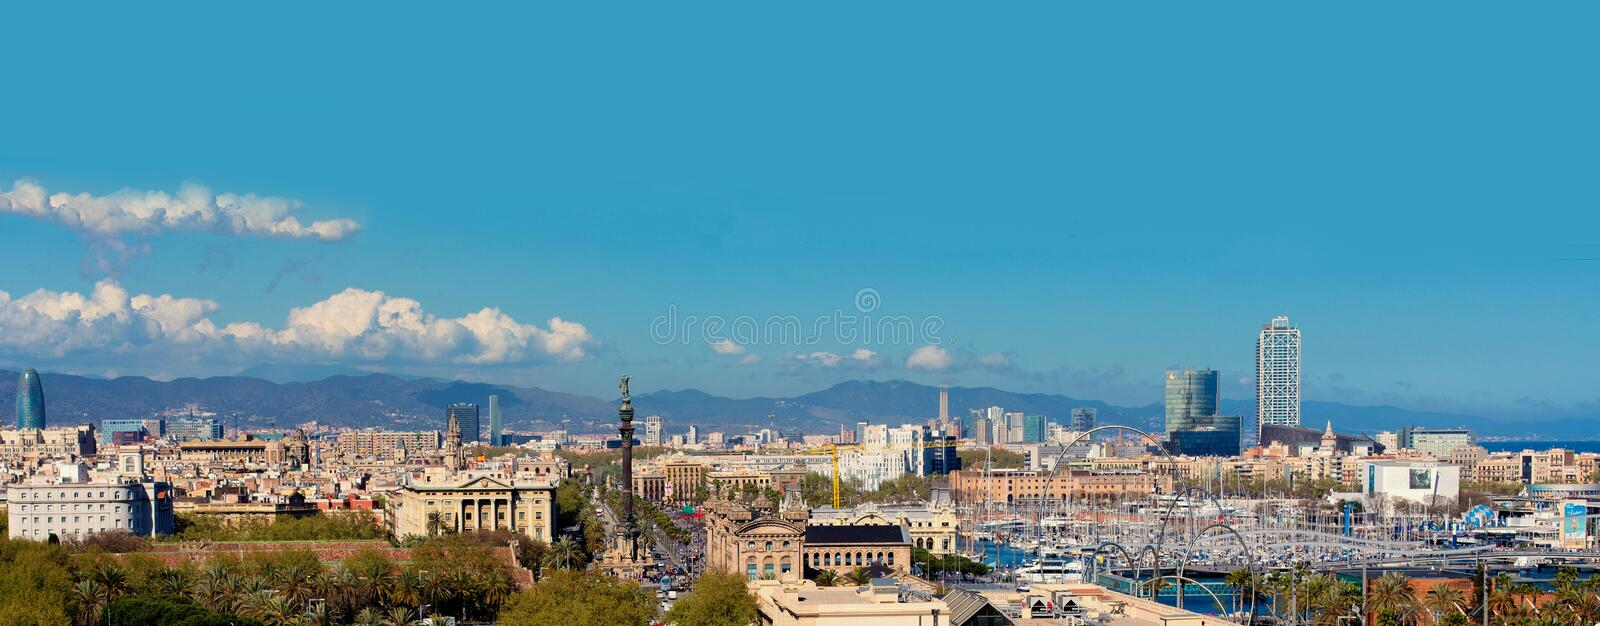 Aerial Panorama view of Barcelona city skyline over Passeig de C royalty free stock image